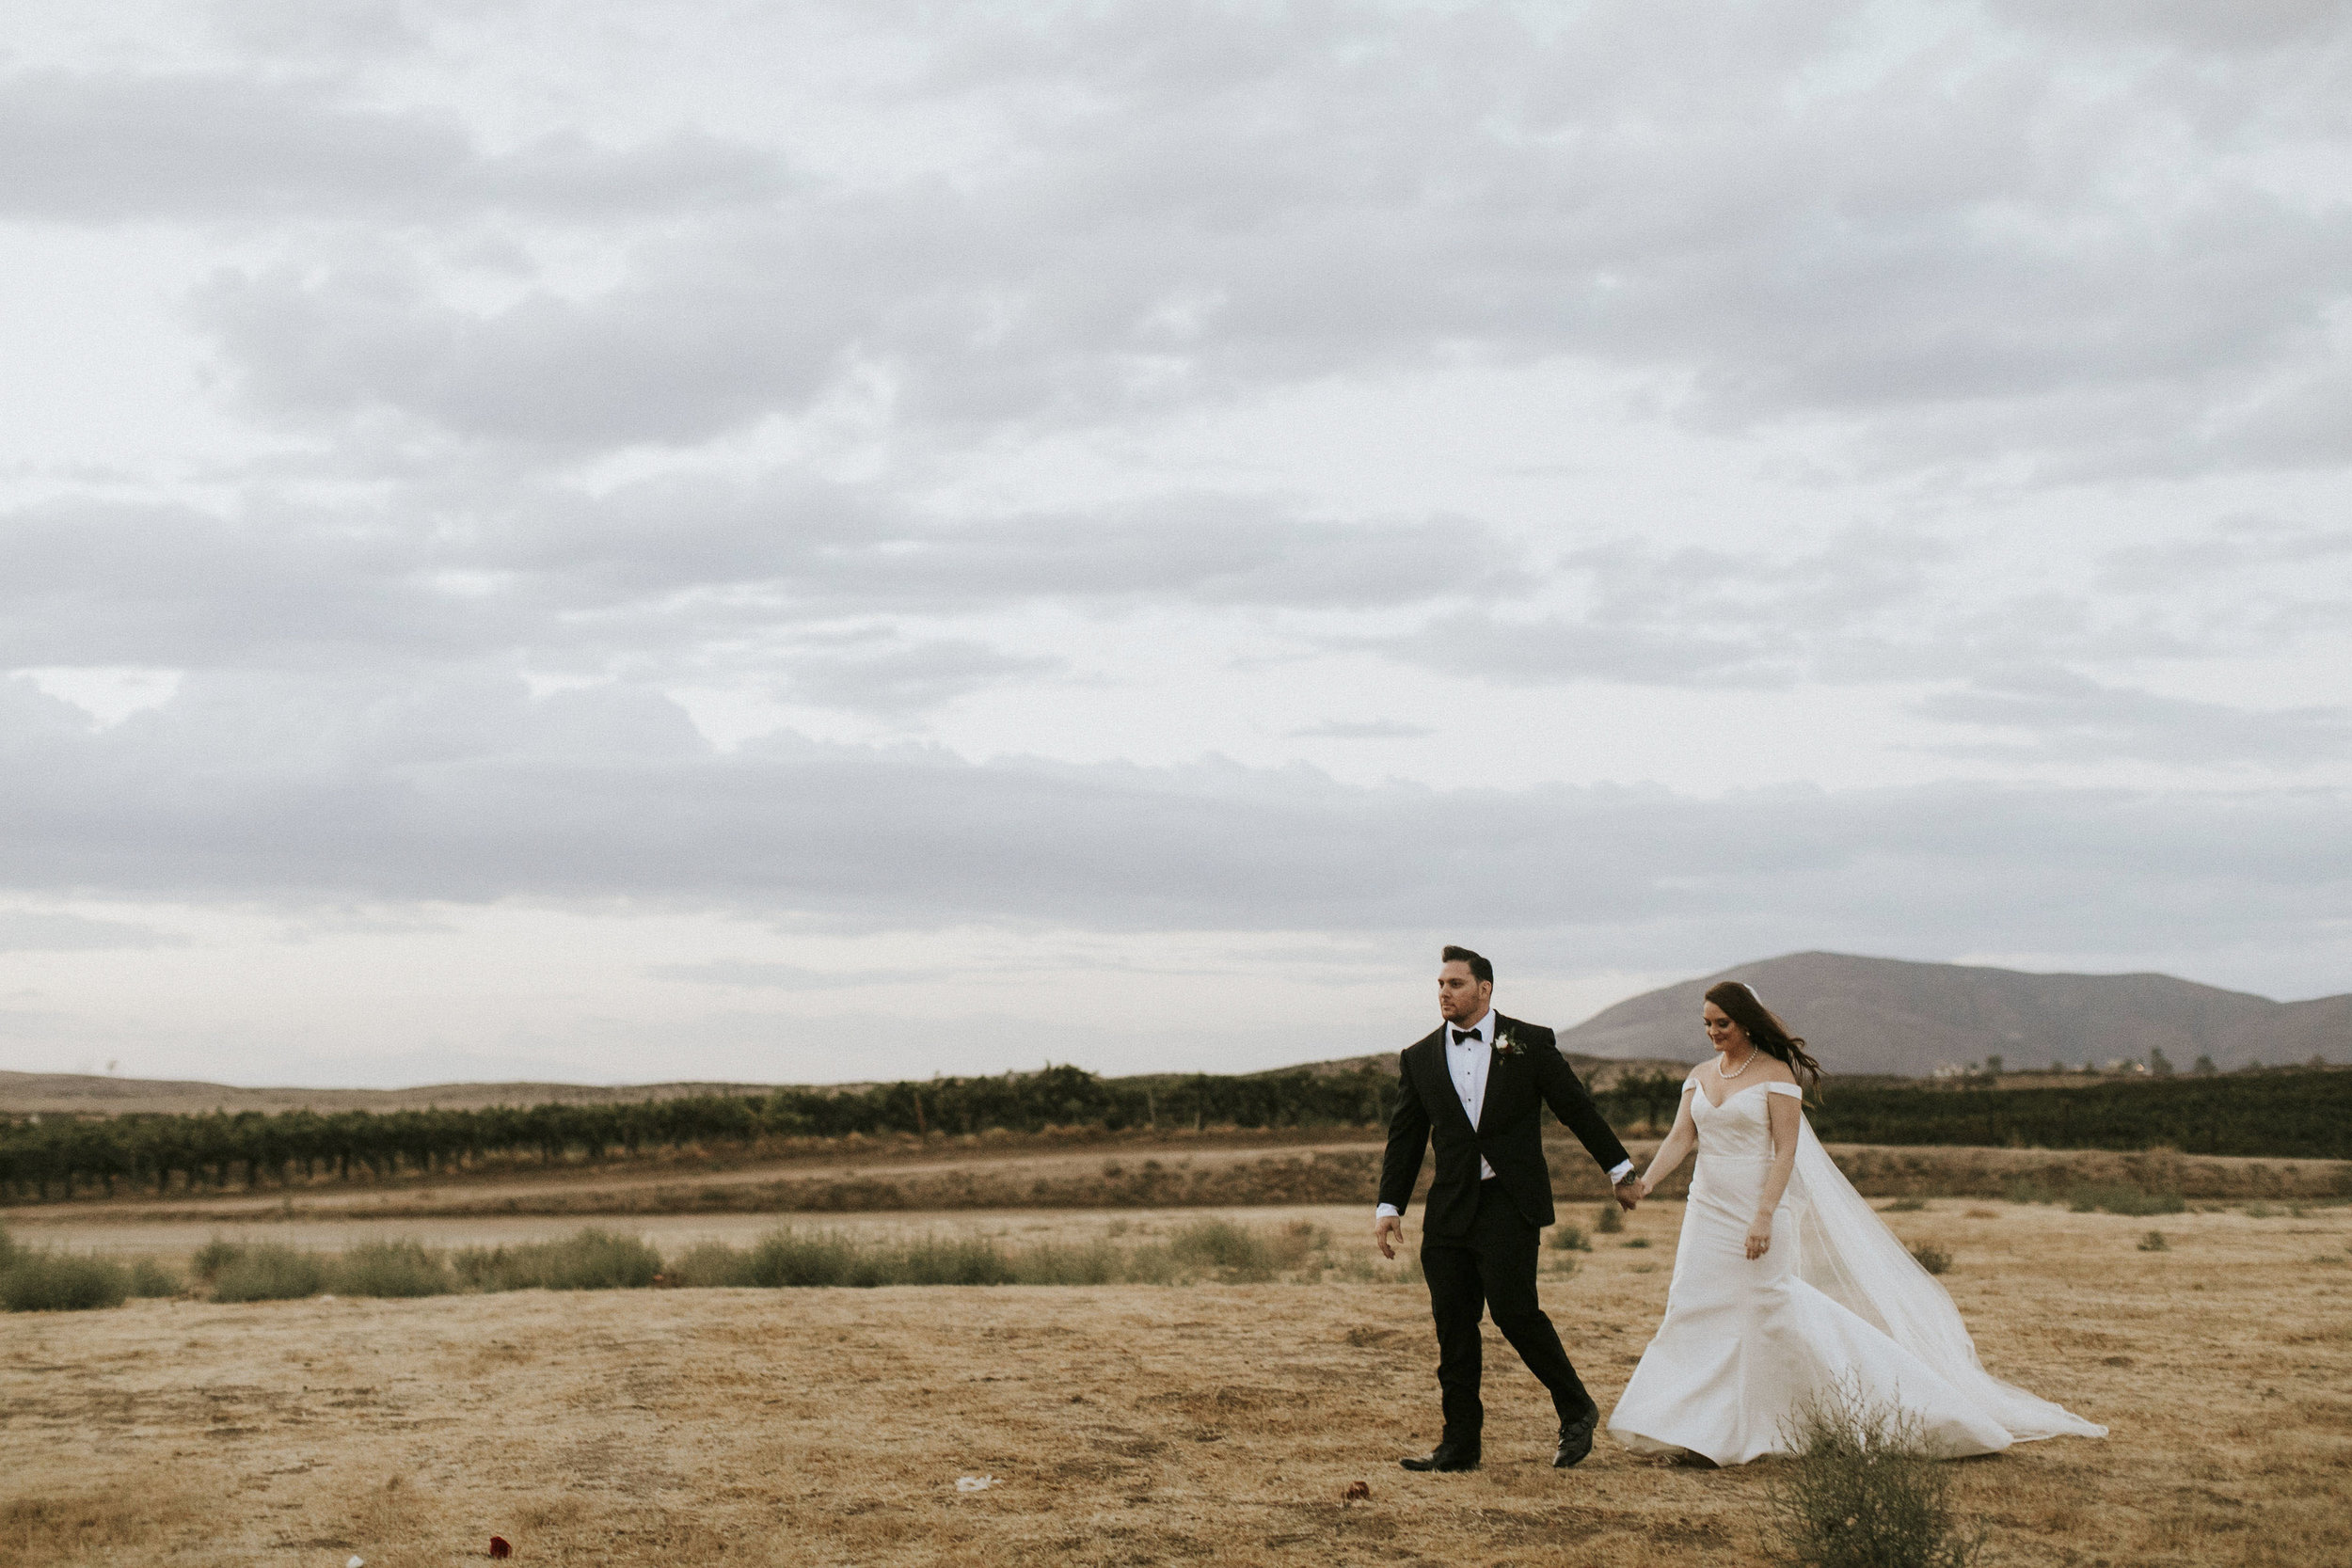 Domenica Beauty _ Hair and Makeup Artist _Wedding _ Temecula, CA _ Catherine and Darryl _ 51.JPG